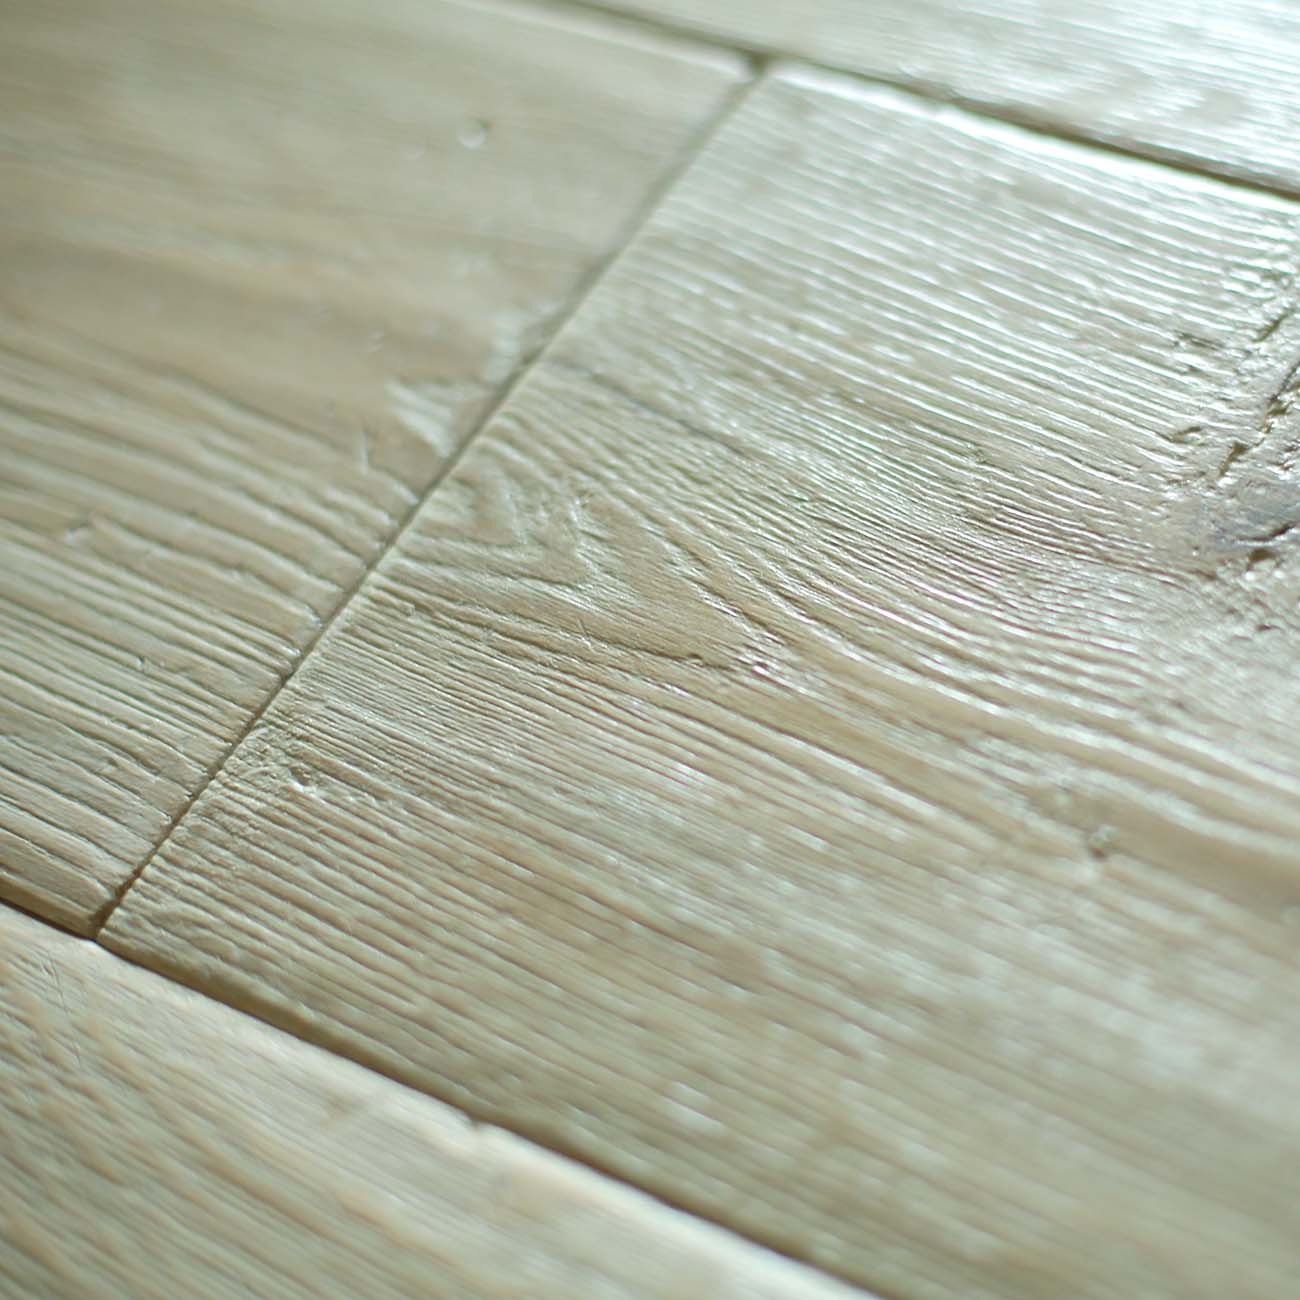 7 Bianca Tudor Generations engineered flooring.jpg